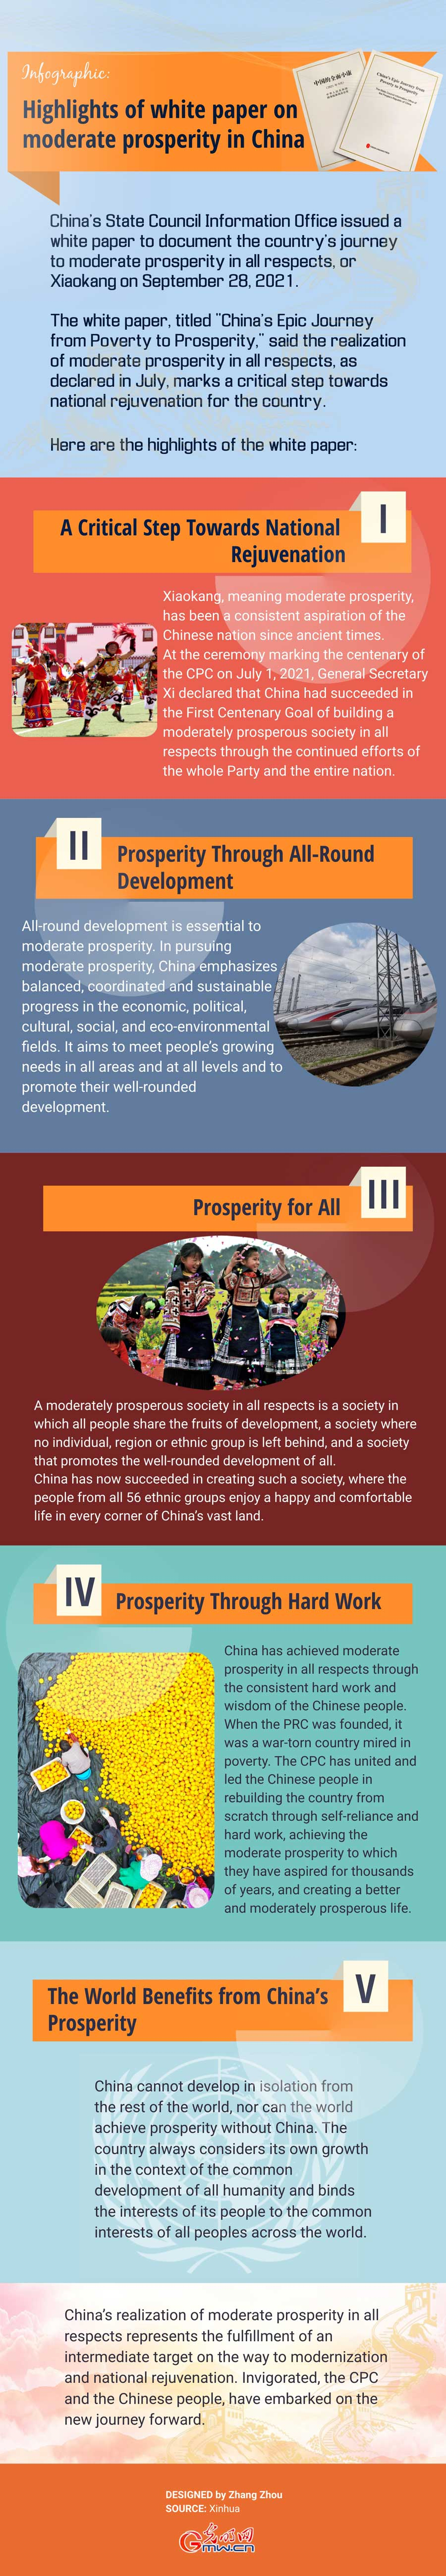 Infographic: Highlights of white paper on moderate prosperity in China